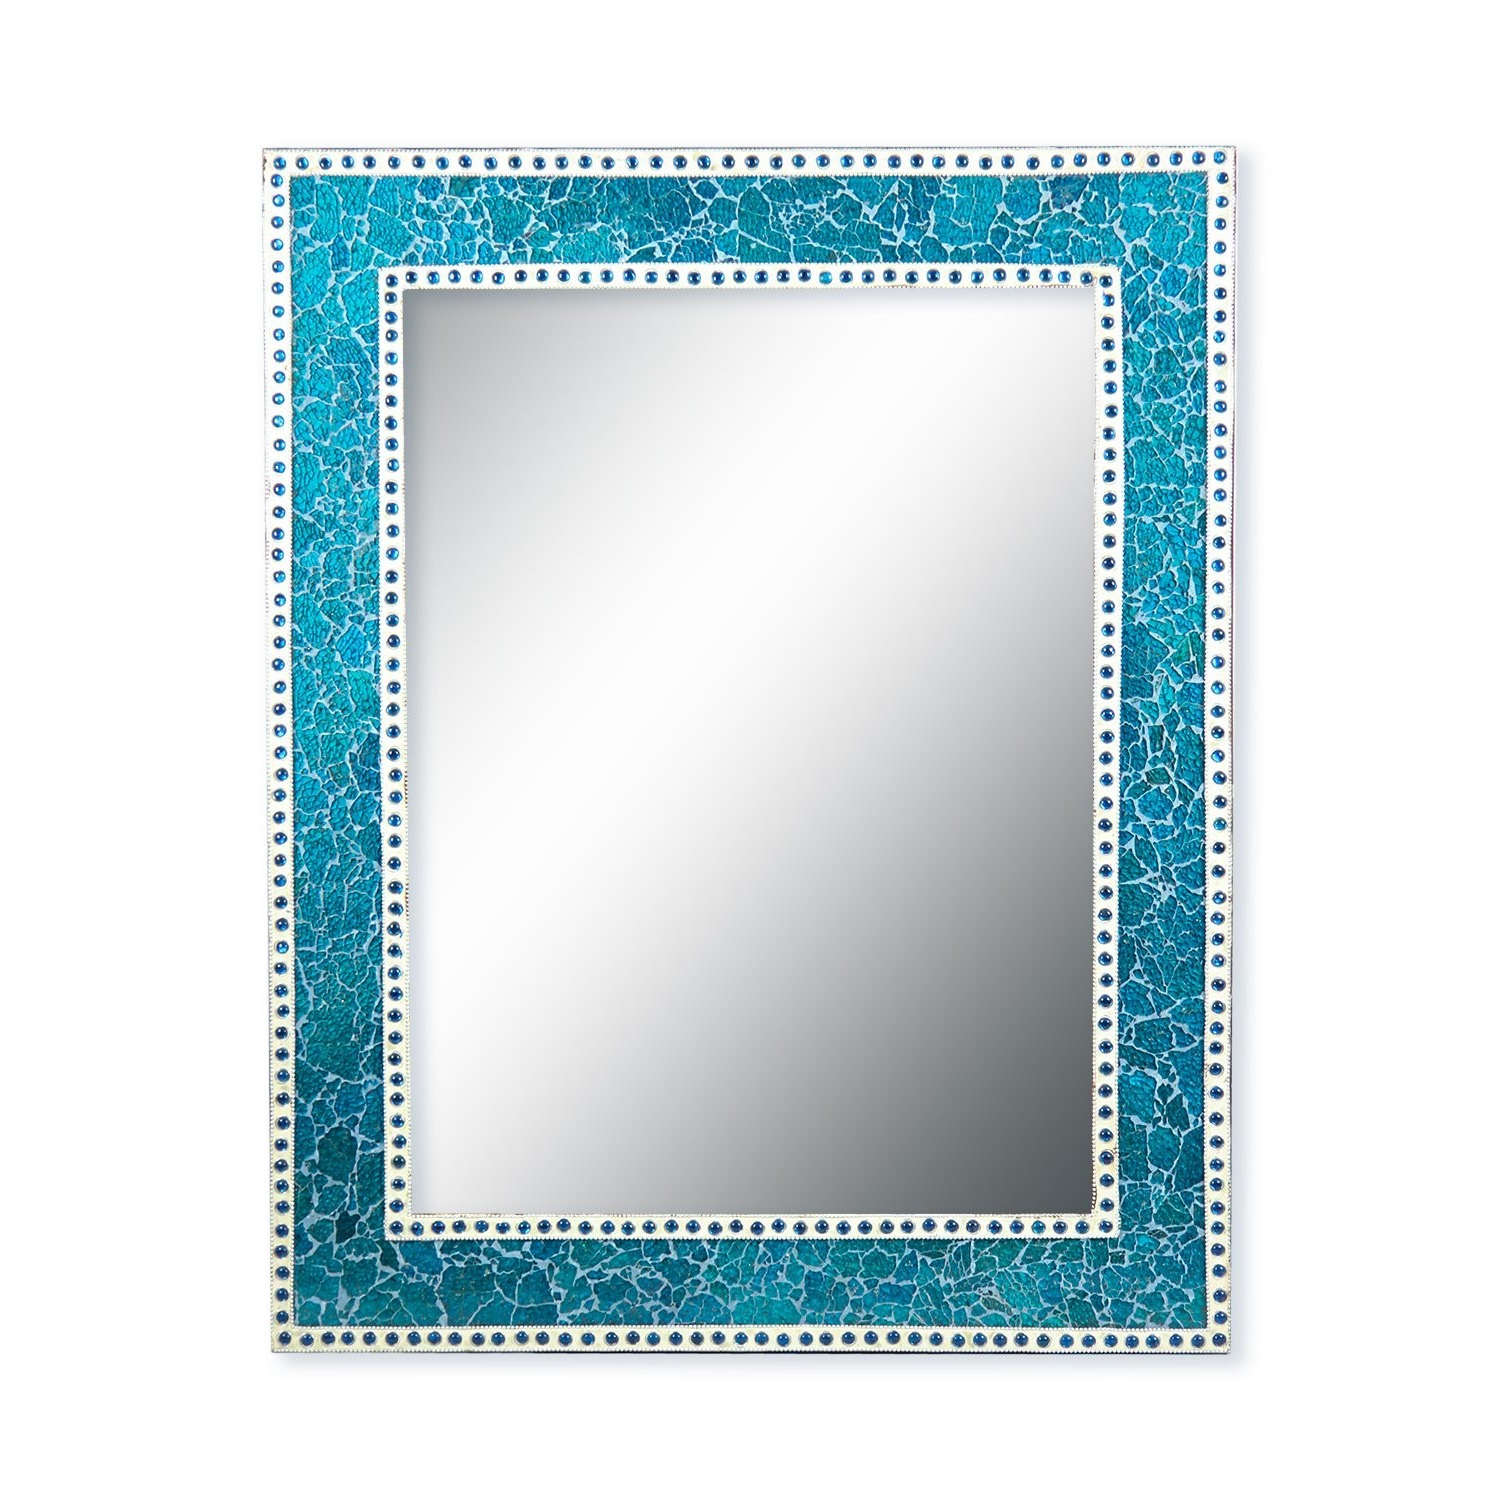 Turquoise Wall Mirrors With Regard To 2019 Decorshore 30X24 Inch Turquoise Crackled Glass Decorative Rectangular Wall  Mirror, Handmade Mosaic Glass Tile Framed Glamorous Vanity/accent Mirror (View 15 of 20)